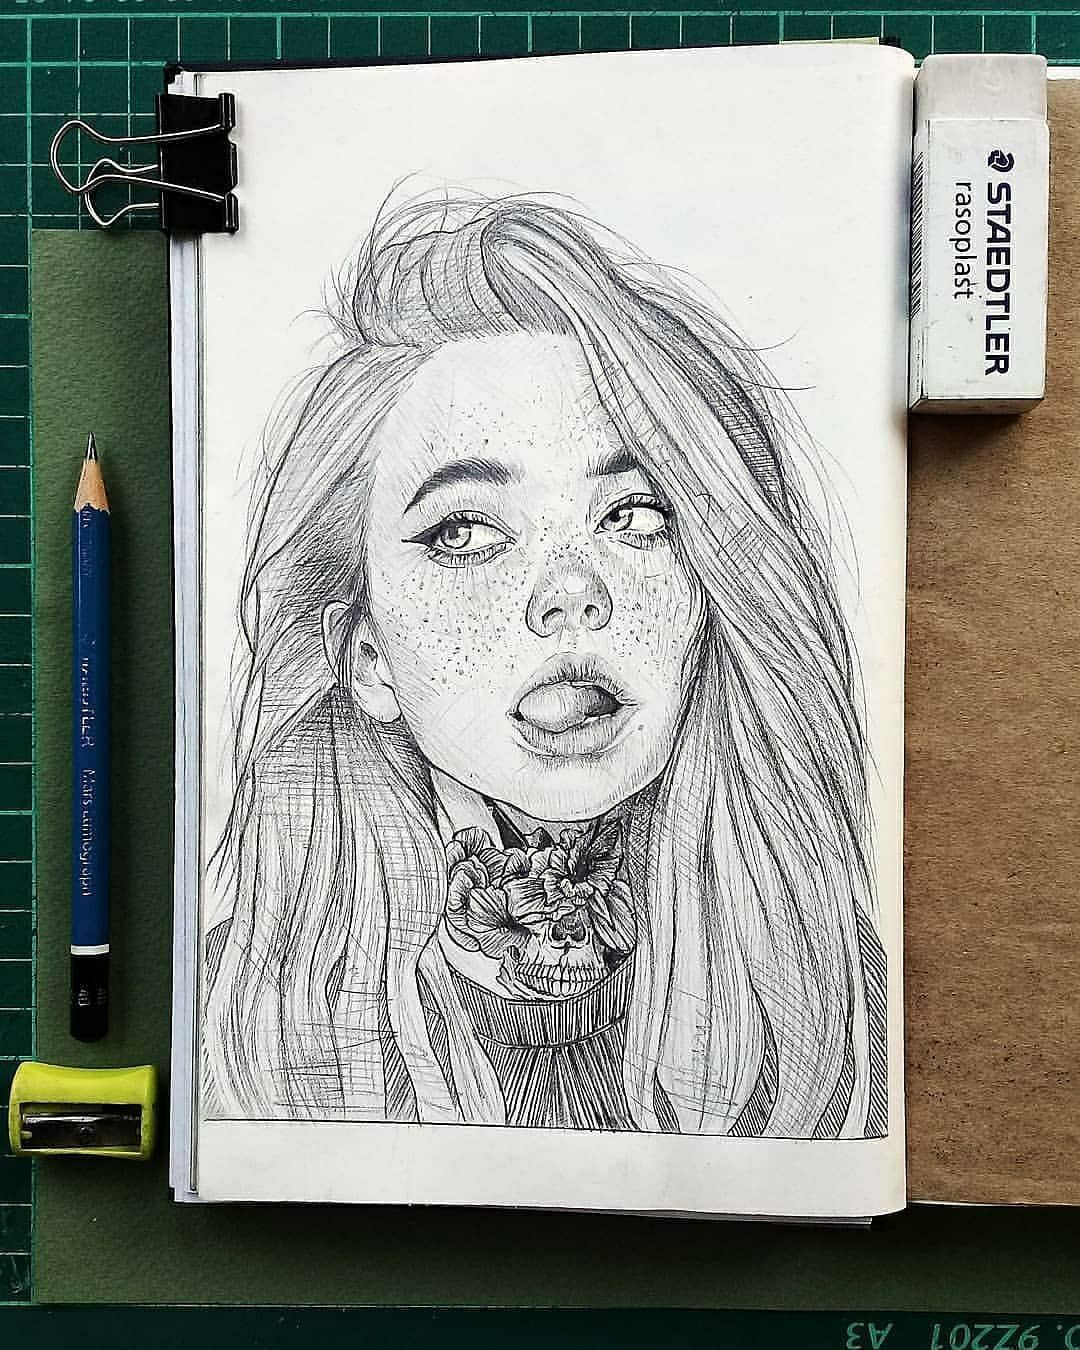 "ART | WORLD of EXPRESSION 🎨 on Instagram: ""What do you think of these pencil sketches? 🙂 Choose your favorite drawing! Artist: @herumesus _____________________ ▪ 👉Follow…"""